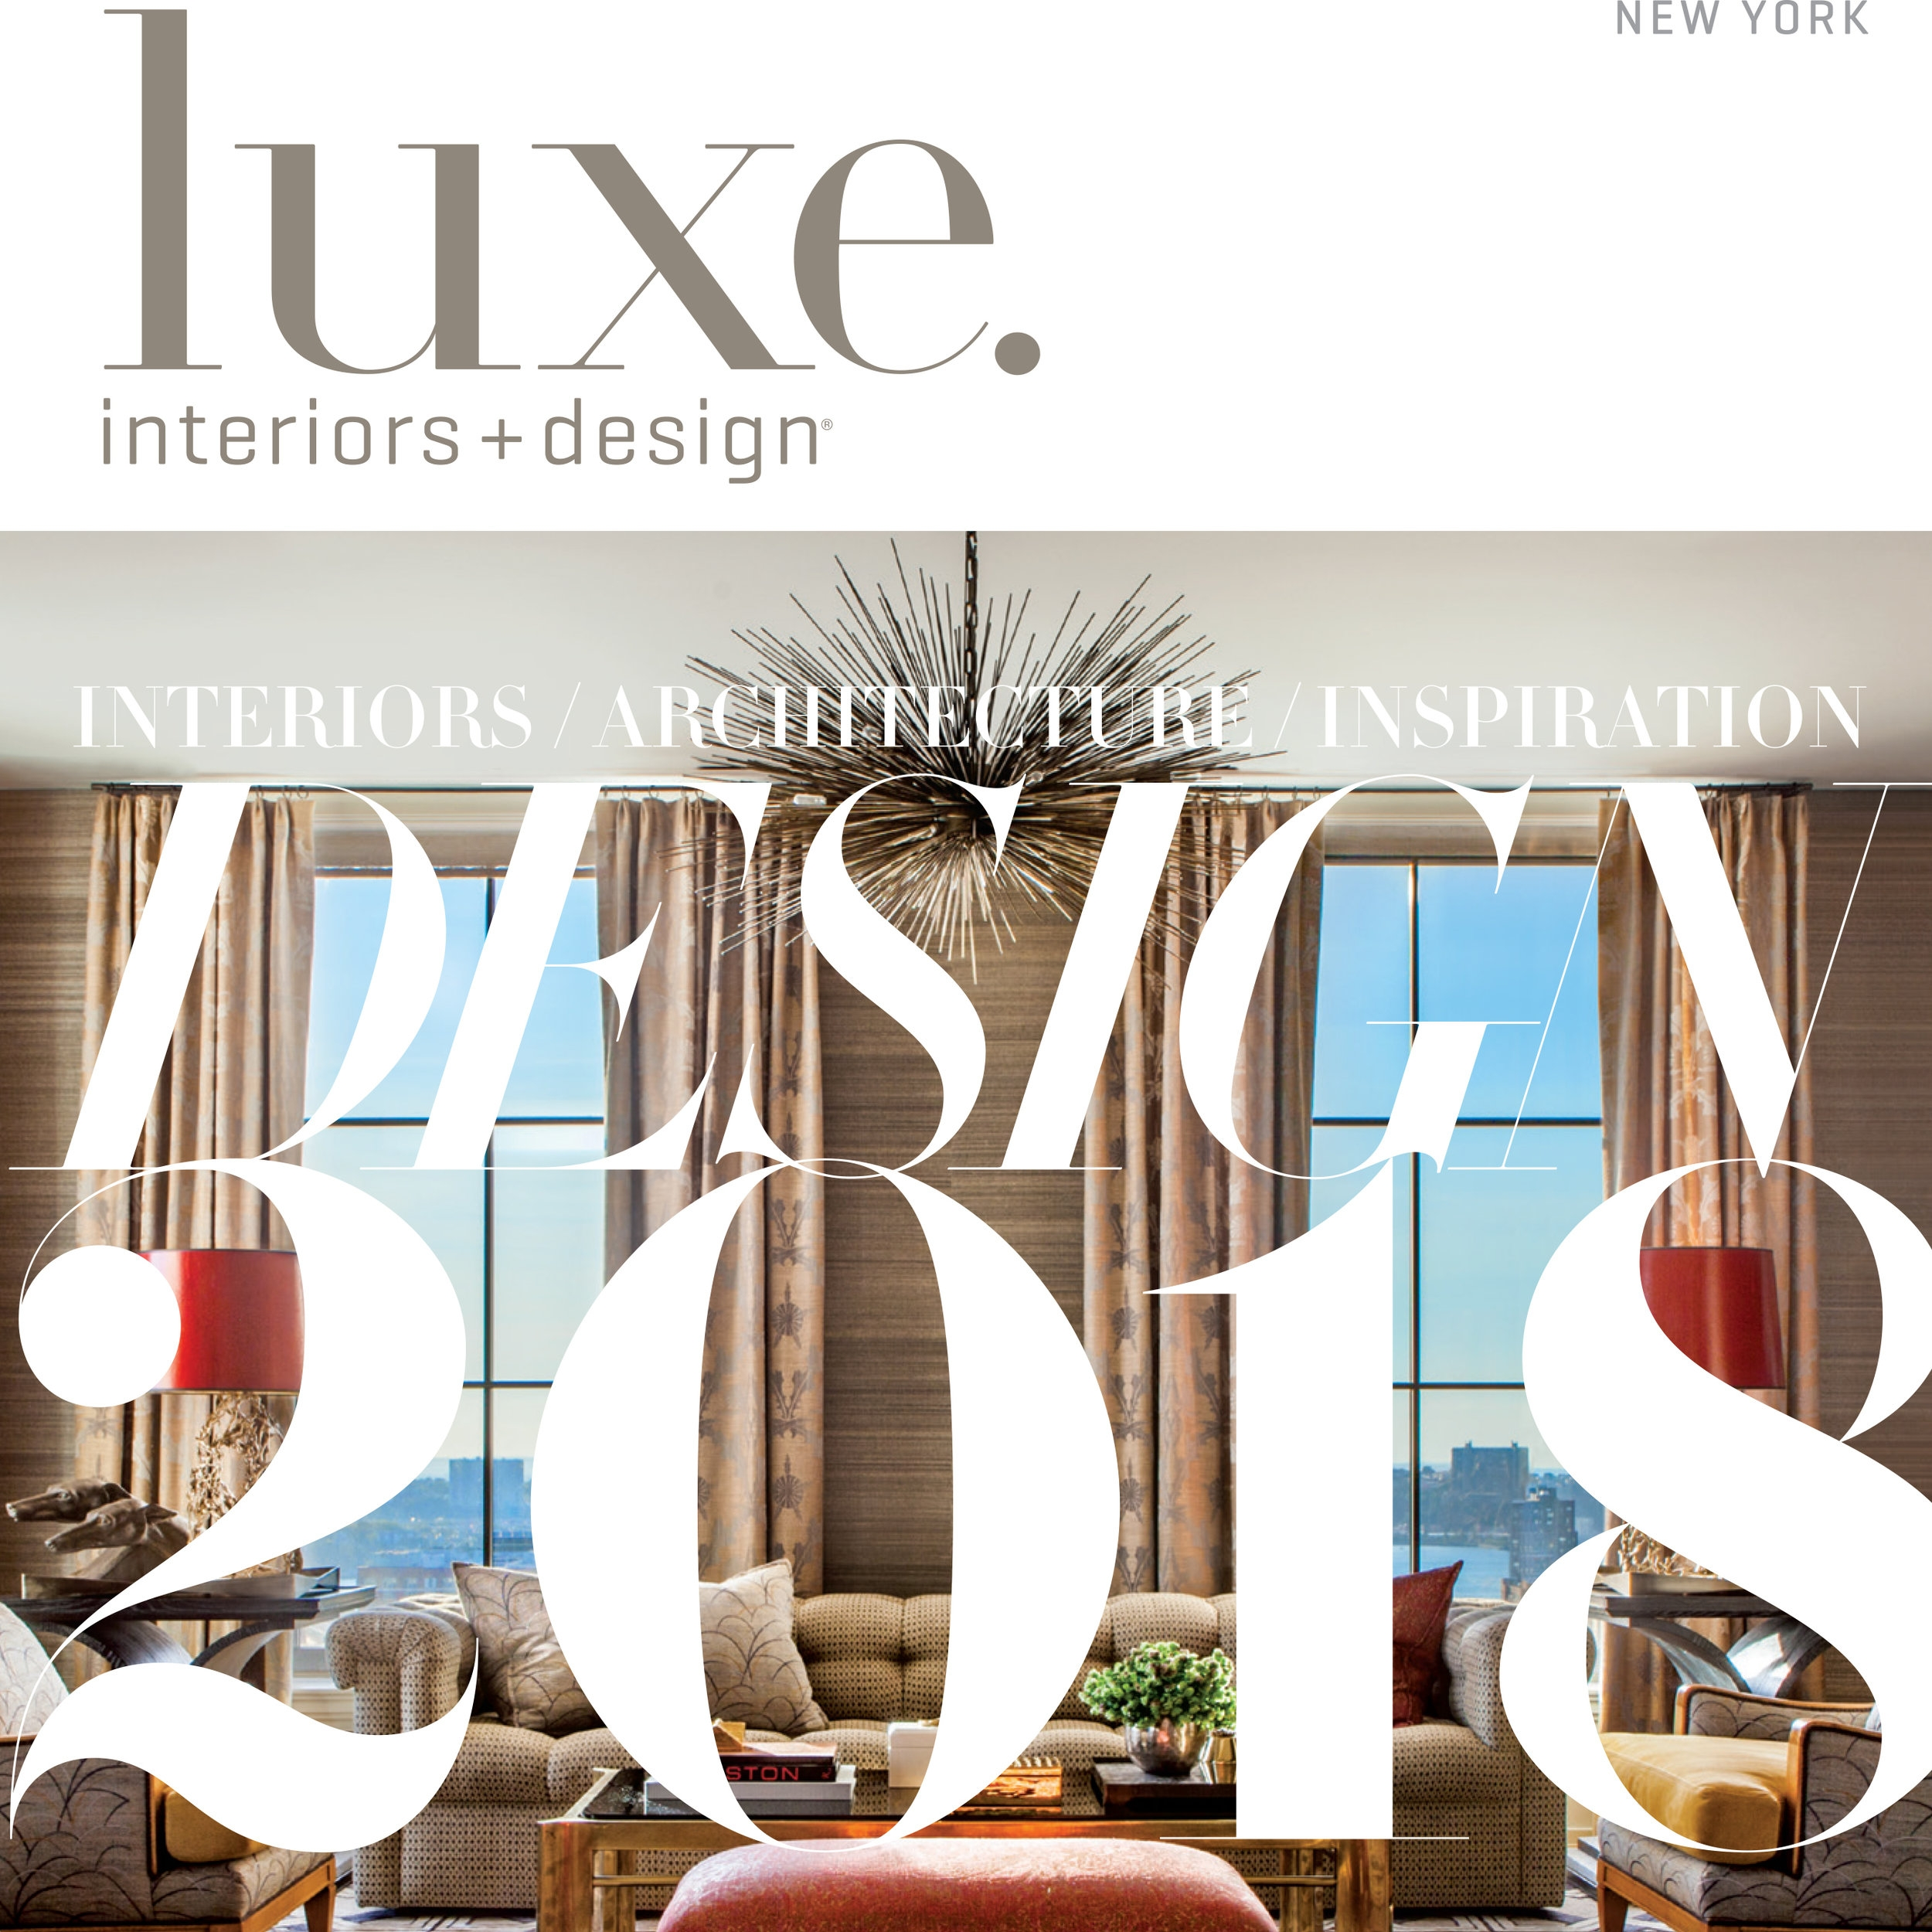 LUXE INTERIORS + DESIGN, January 2018